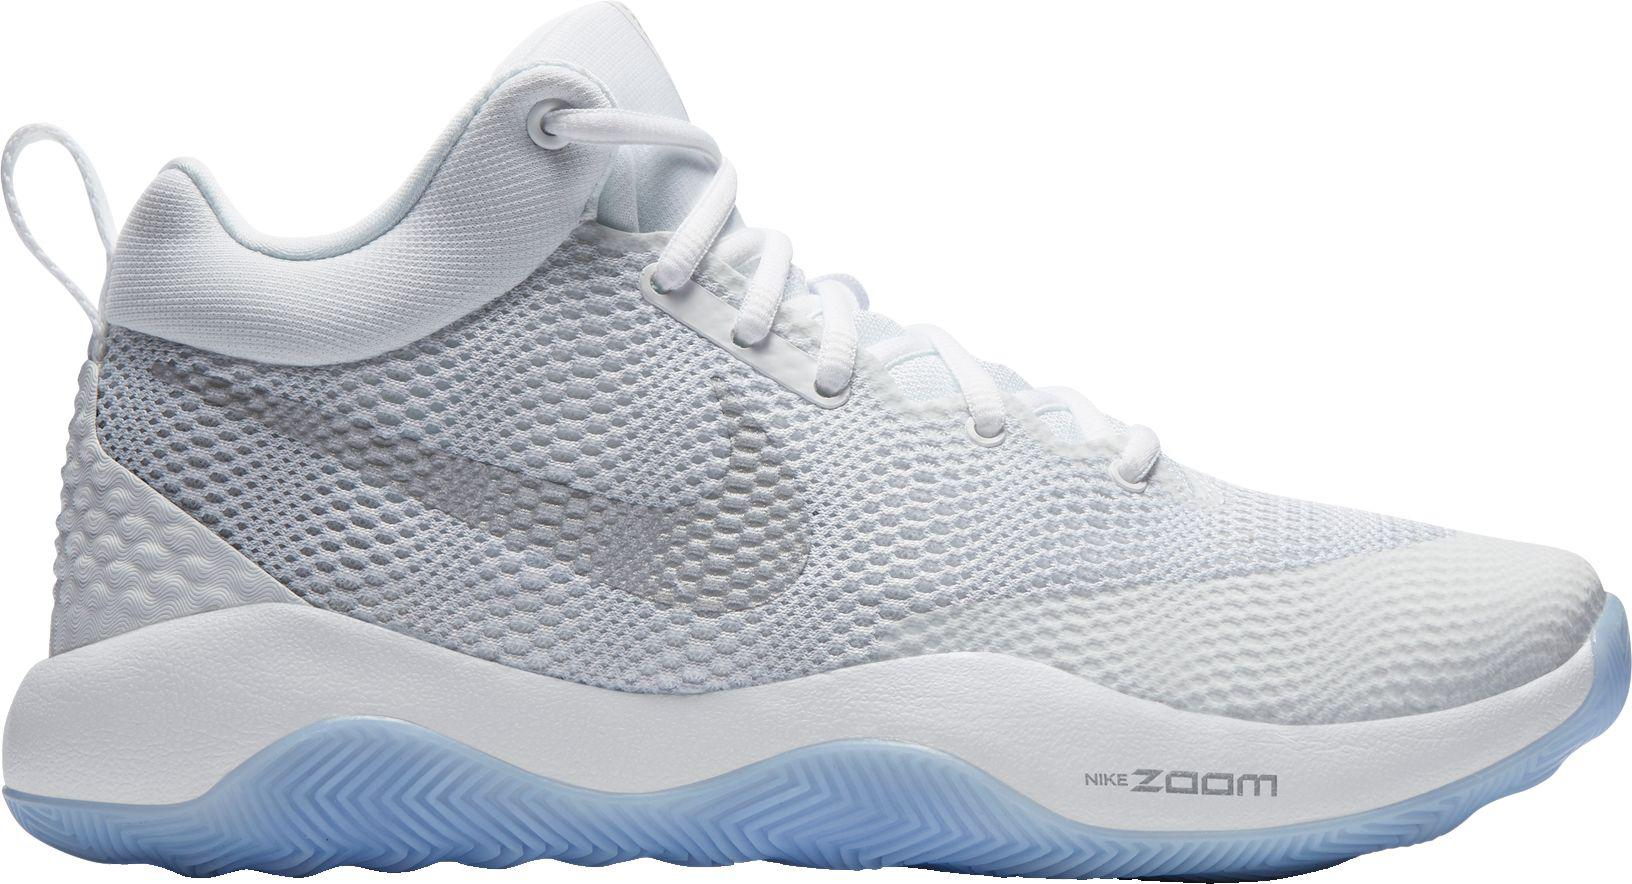 b6c14a171a25 Lyst - Nike Zoom Rev 2017 Basketball Shoes in White for Men